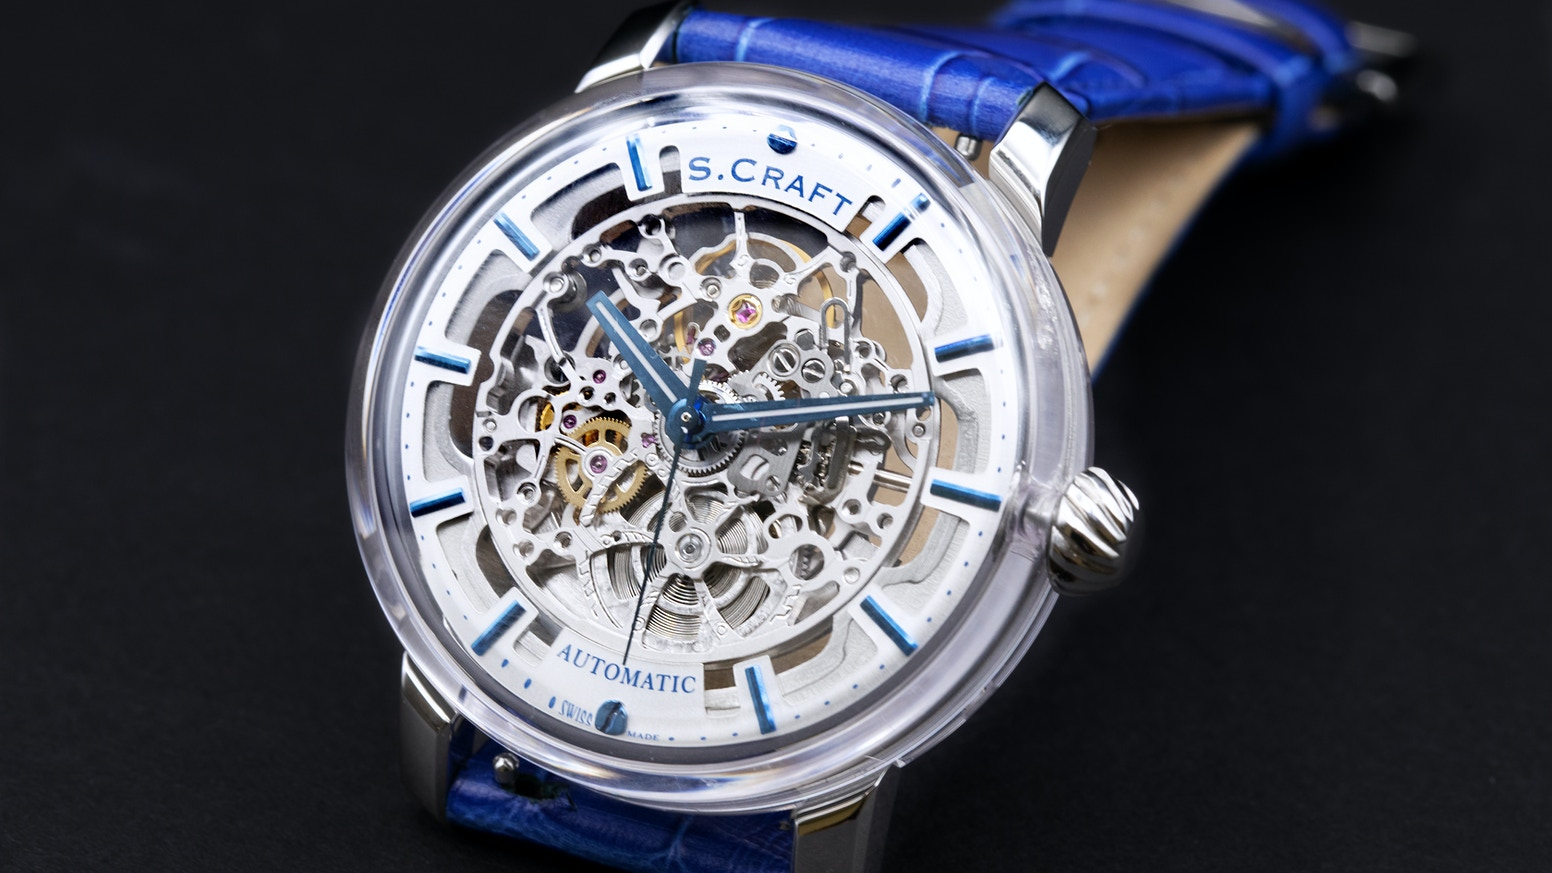 A fully transparent sapphire Swiss Made watch for a fraction of the cost!